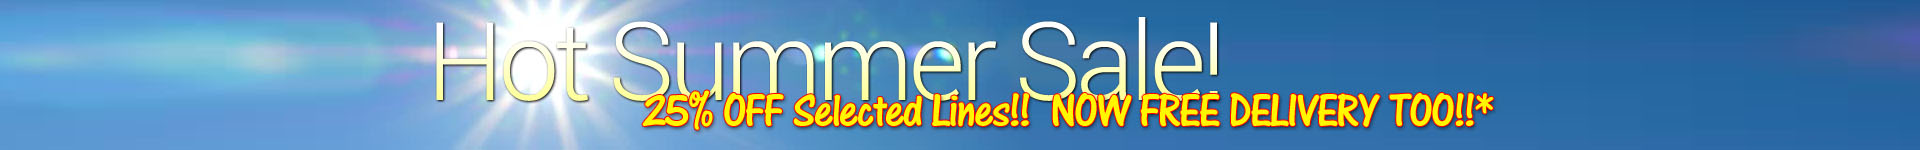 2019 Summer Sale!  SAVE 25% on many selected lines!!  Everthing must go!!